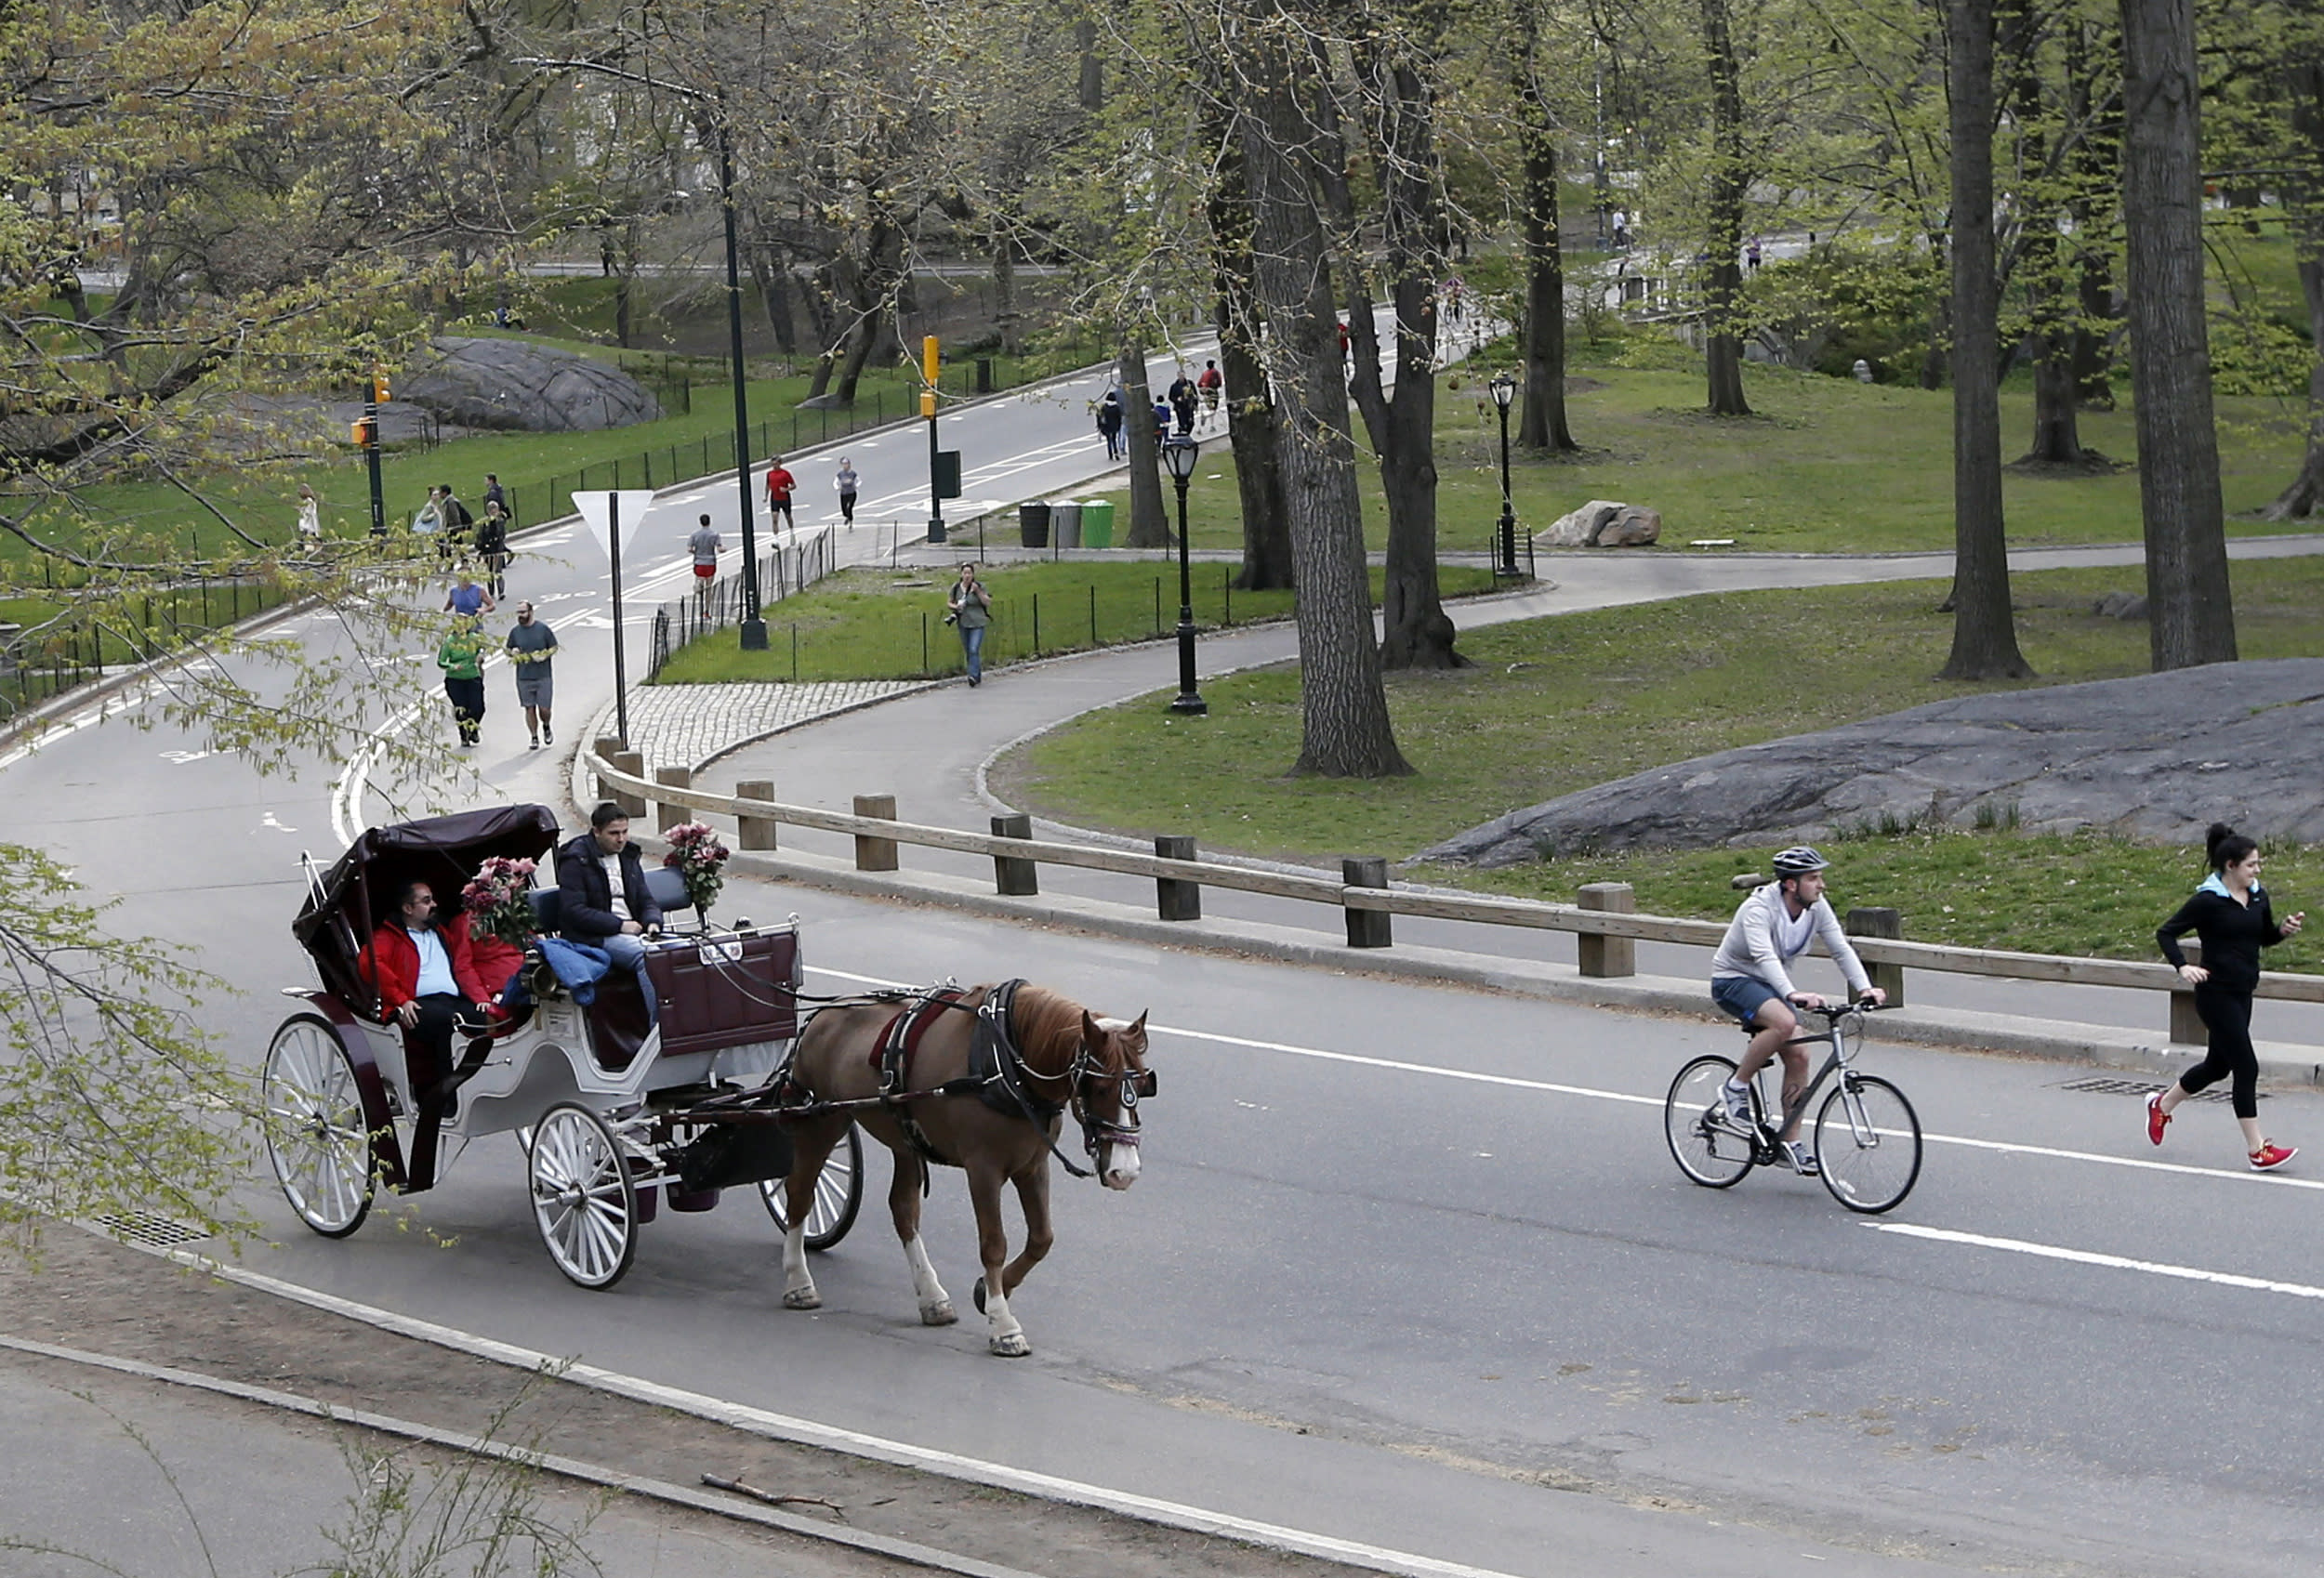 NYC pulls reins on plan for Central Park horse carriages